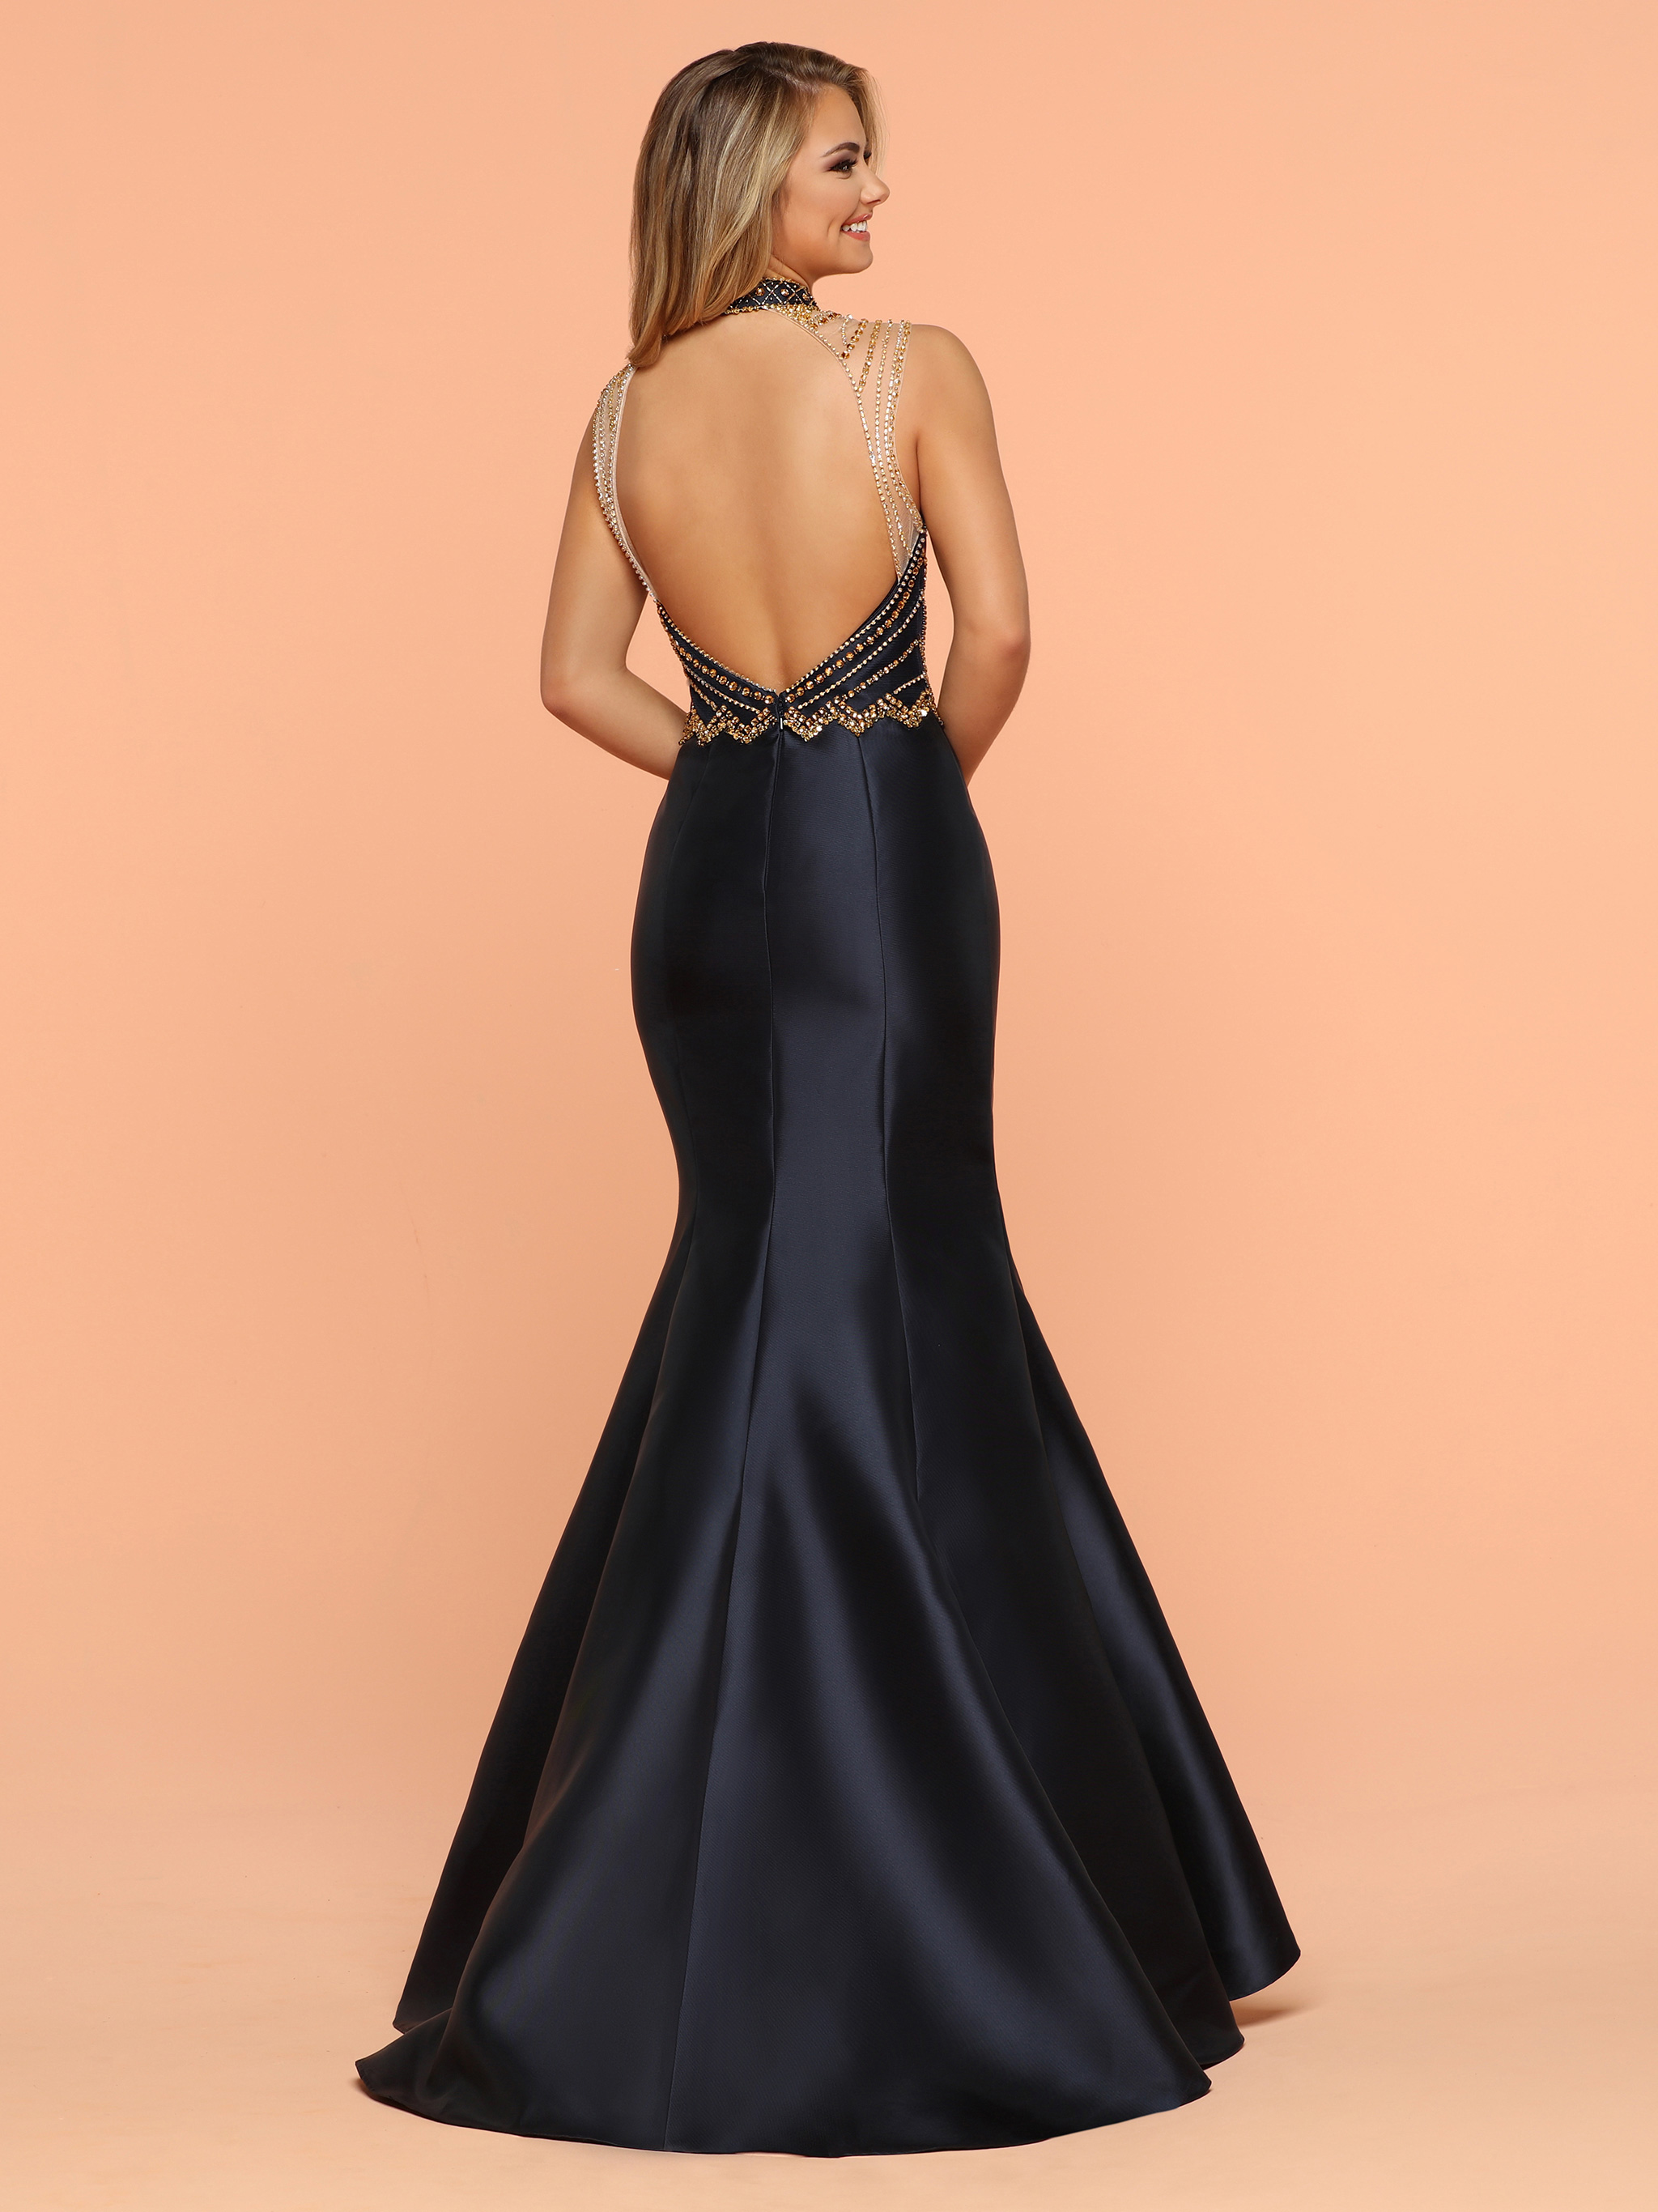 Image showing back view of style #71806